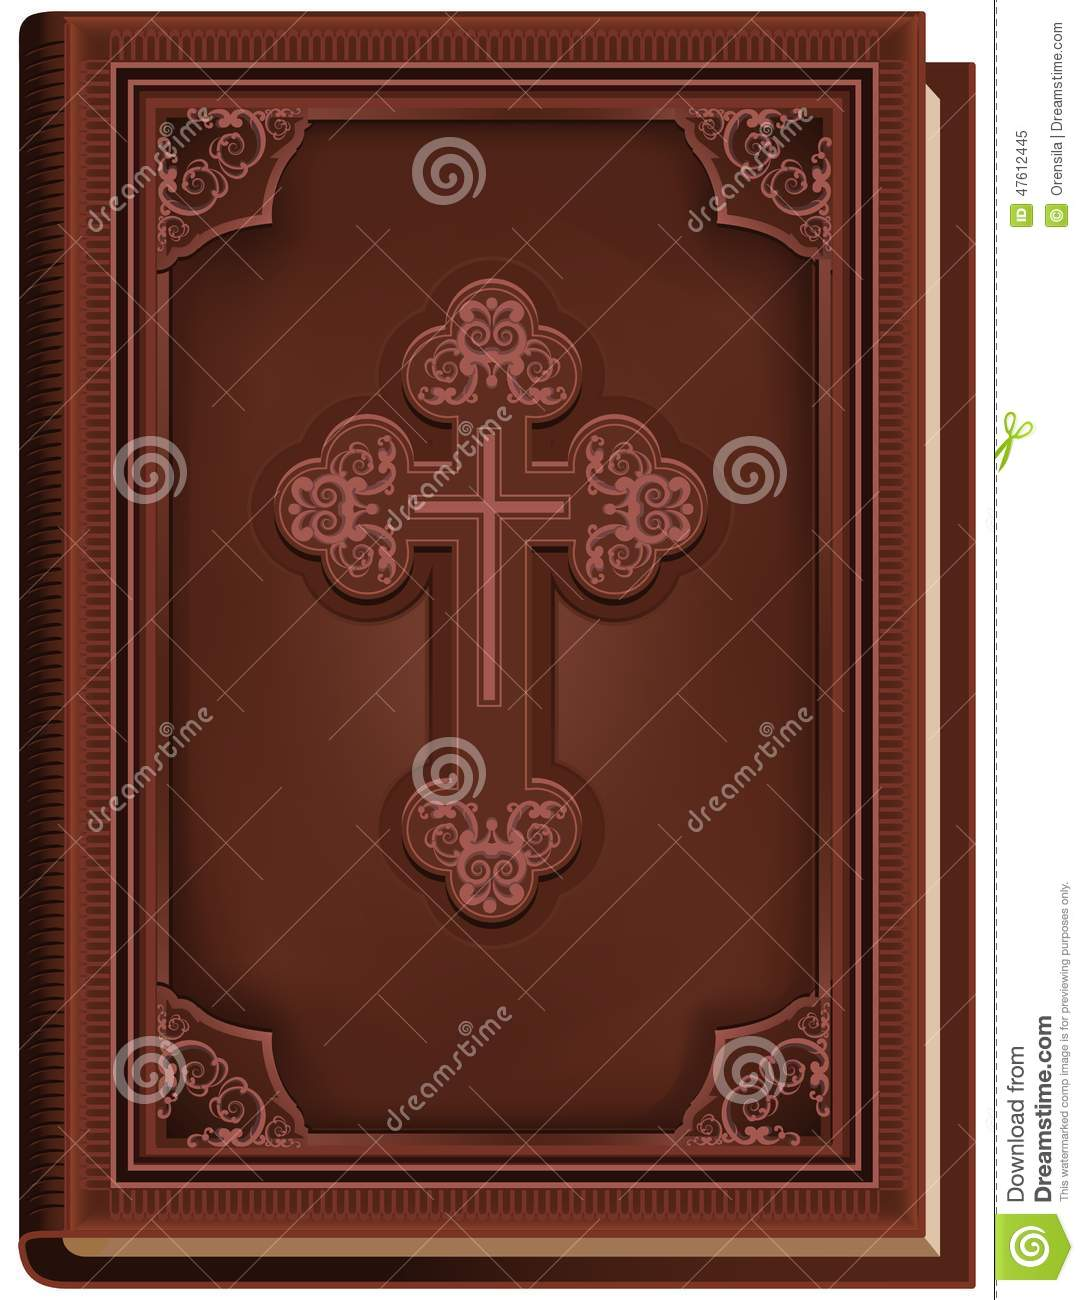 Vintage Leather Look Jeremiah Verse Bible Book Cover Large: The Bible. Closed Book With A Cross On The Cover Stock